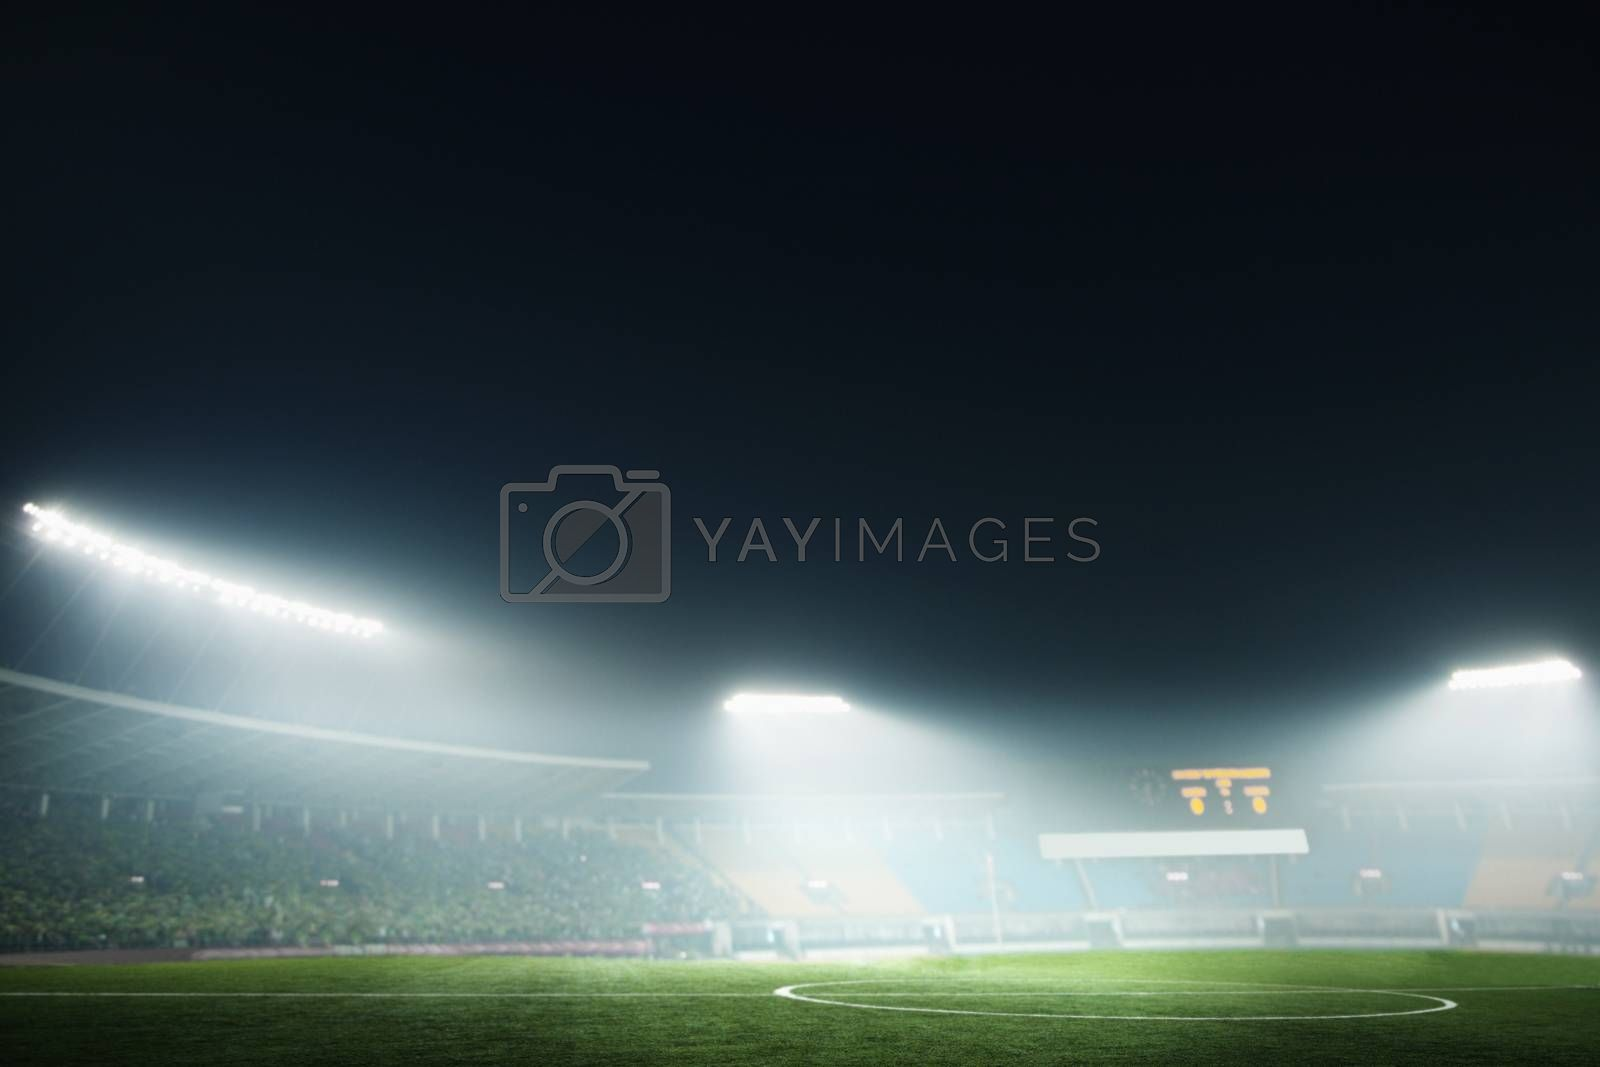 Digital coposit of soccer field and night sky by XiXinXing